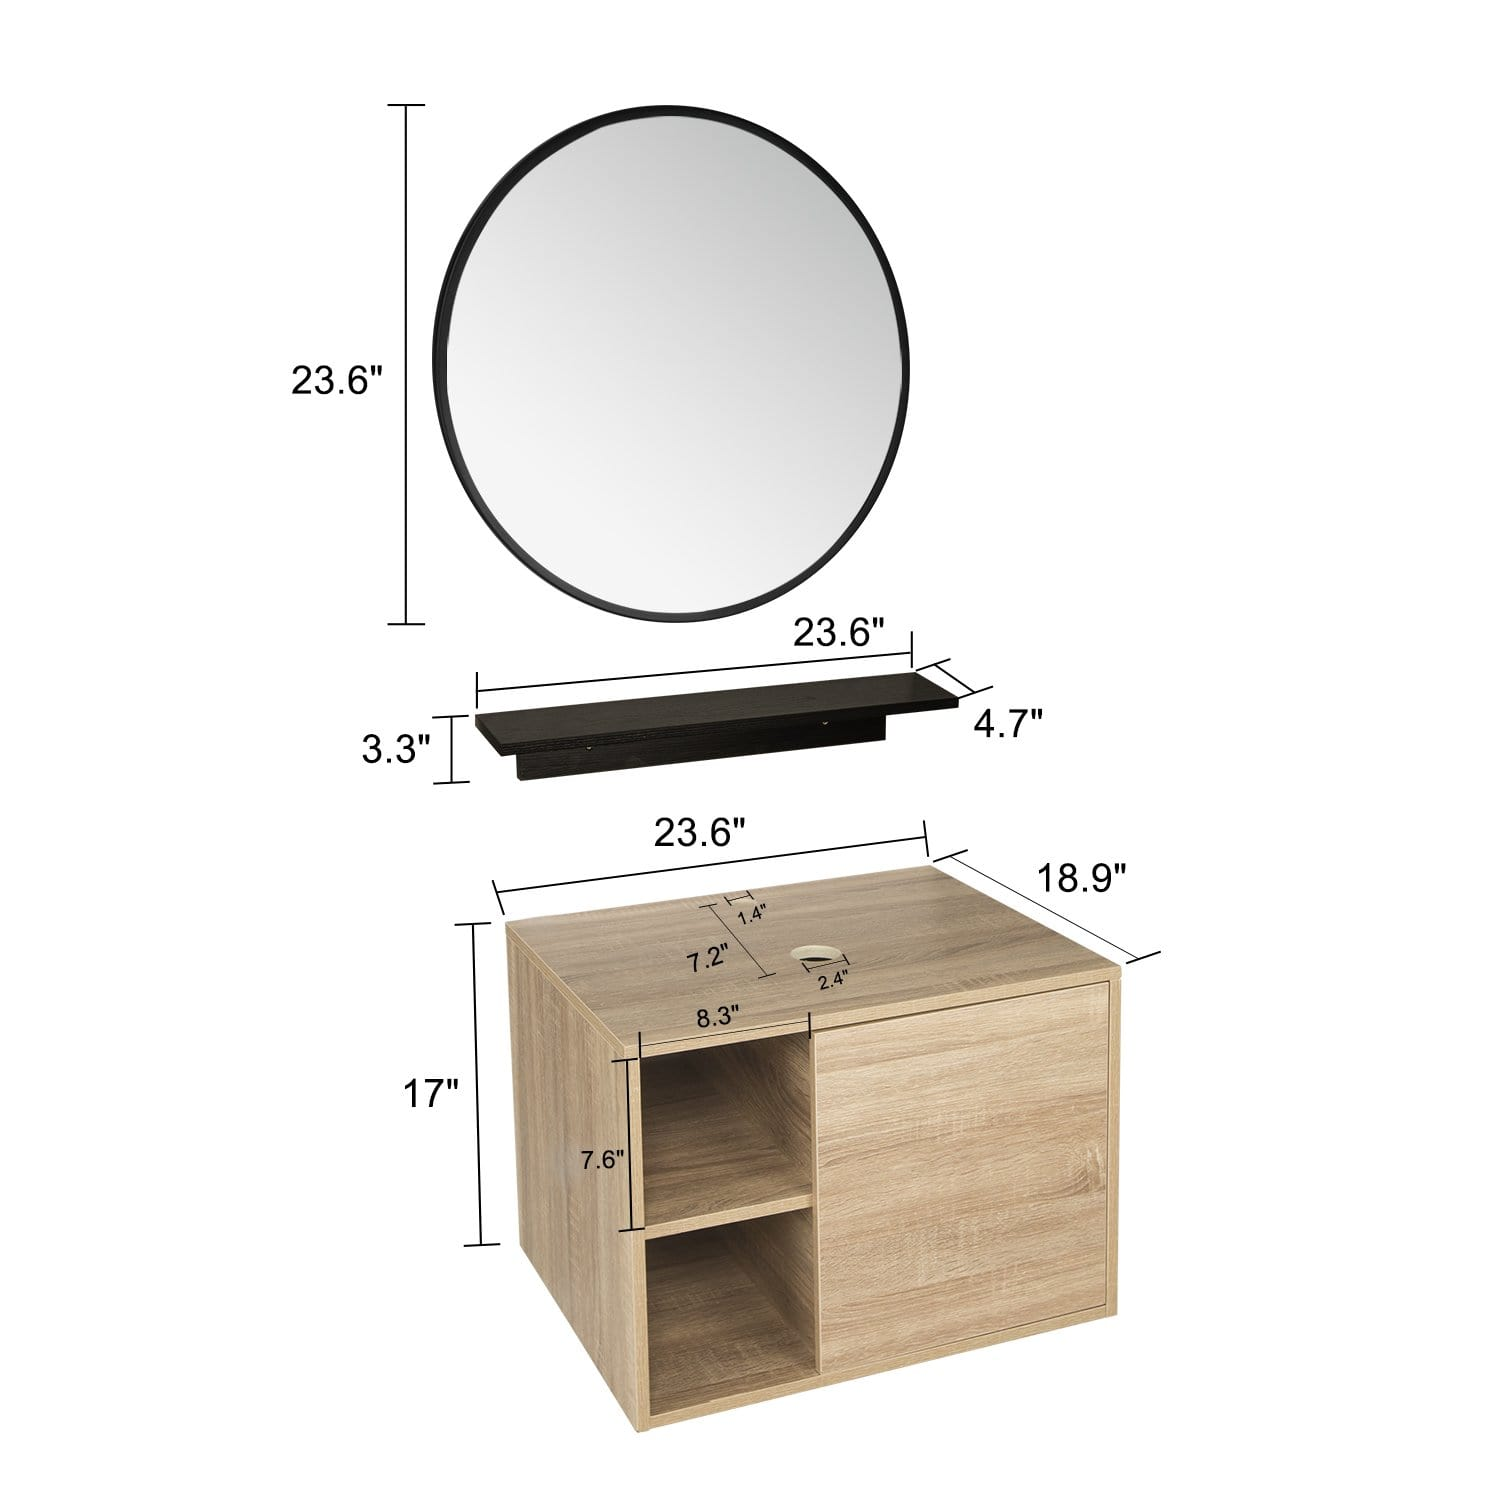 PULUOMIS Wall Mounted Bathroom Vanity